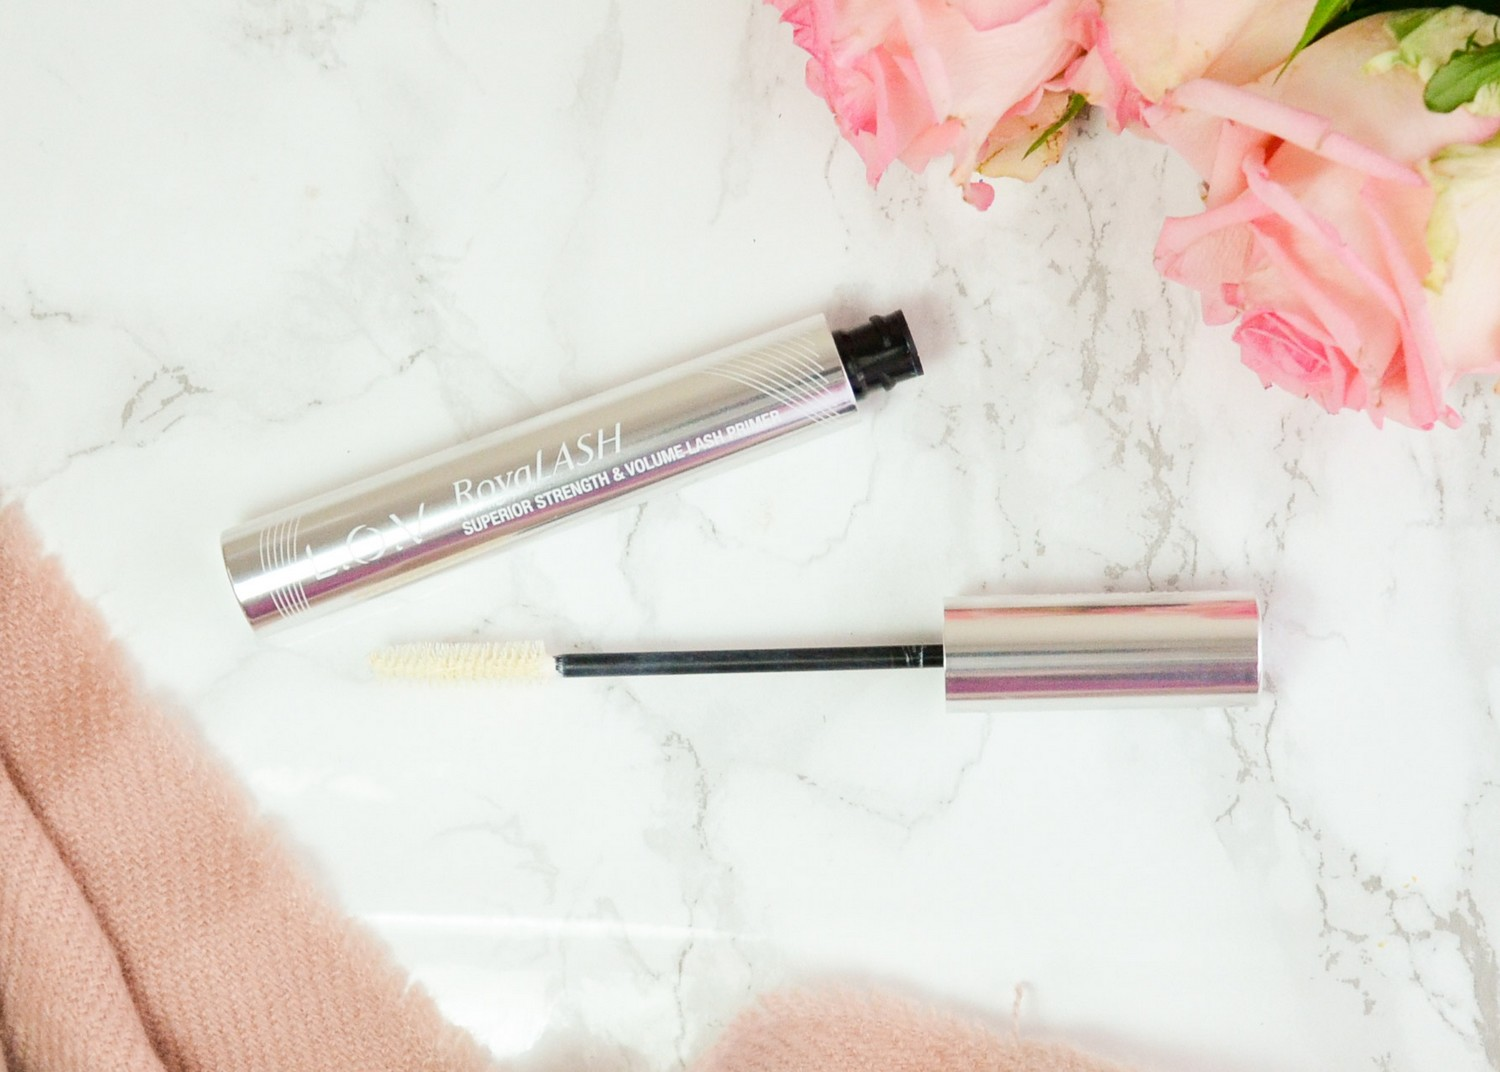 Blogger Mail from L.O.V Cosmetics | RoyaLASH Superior Strenght and Volume Lash Primer